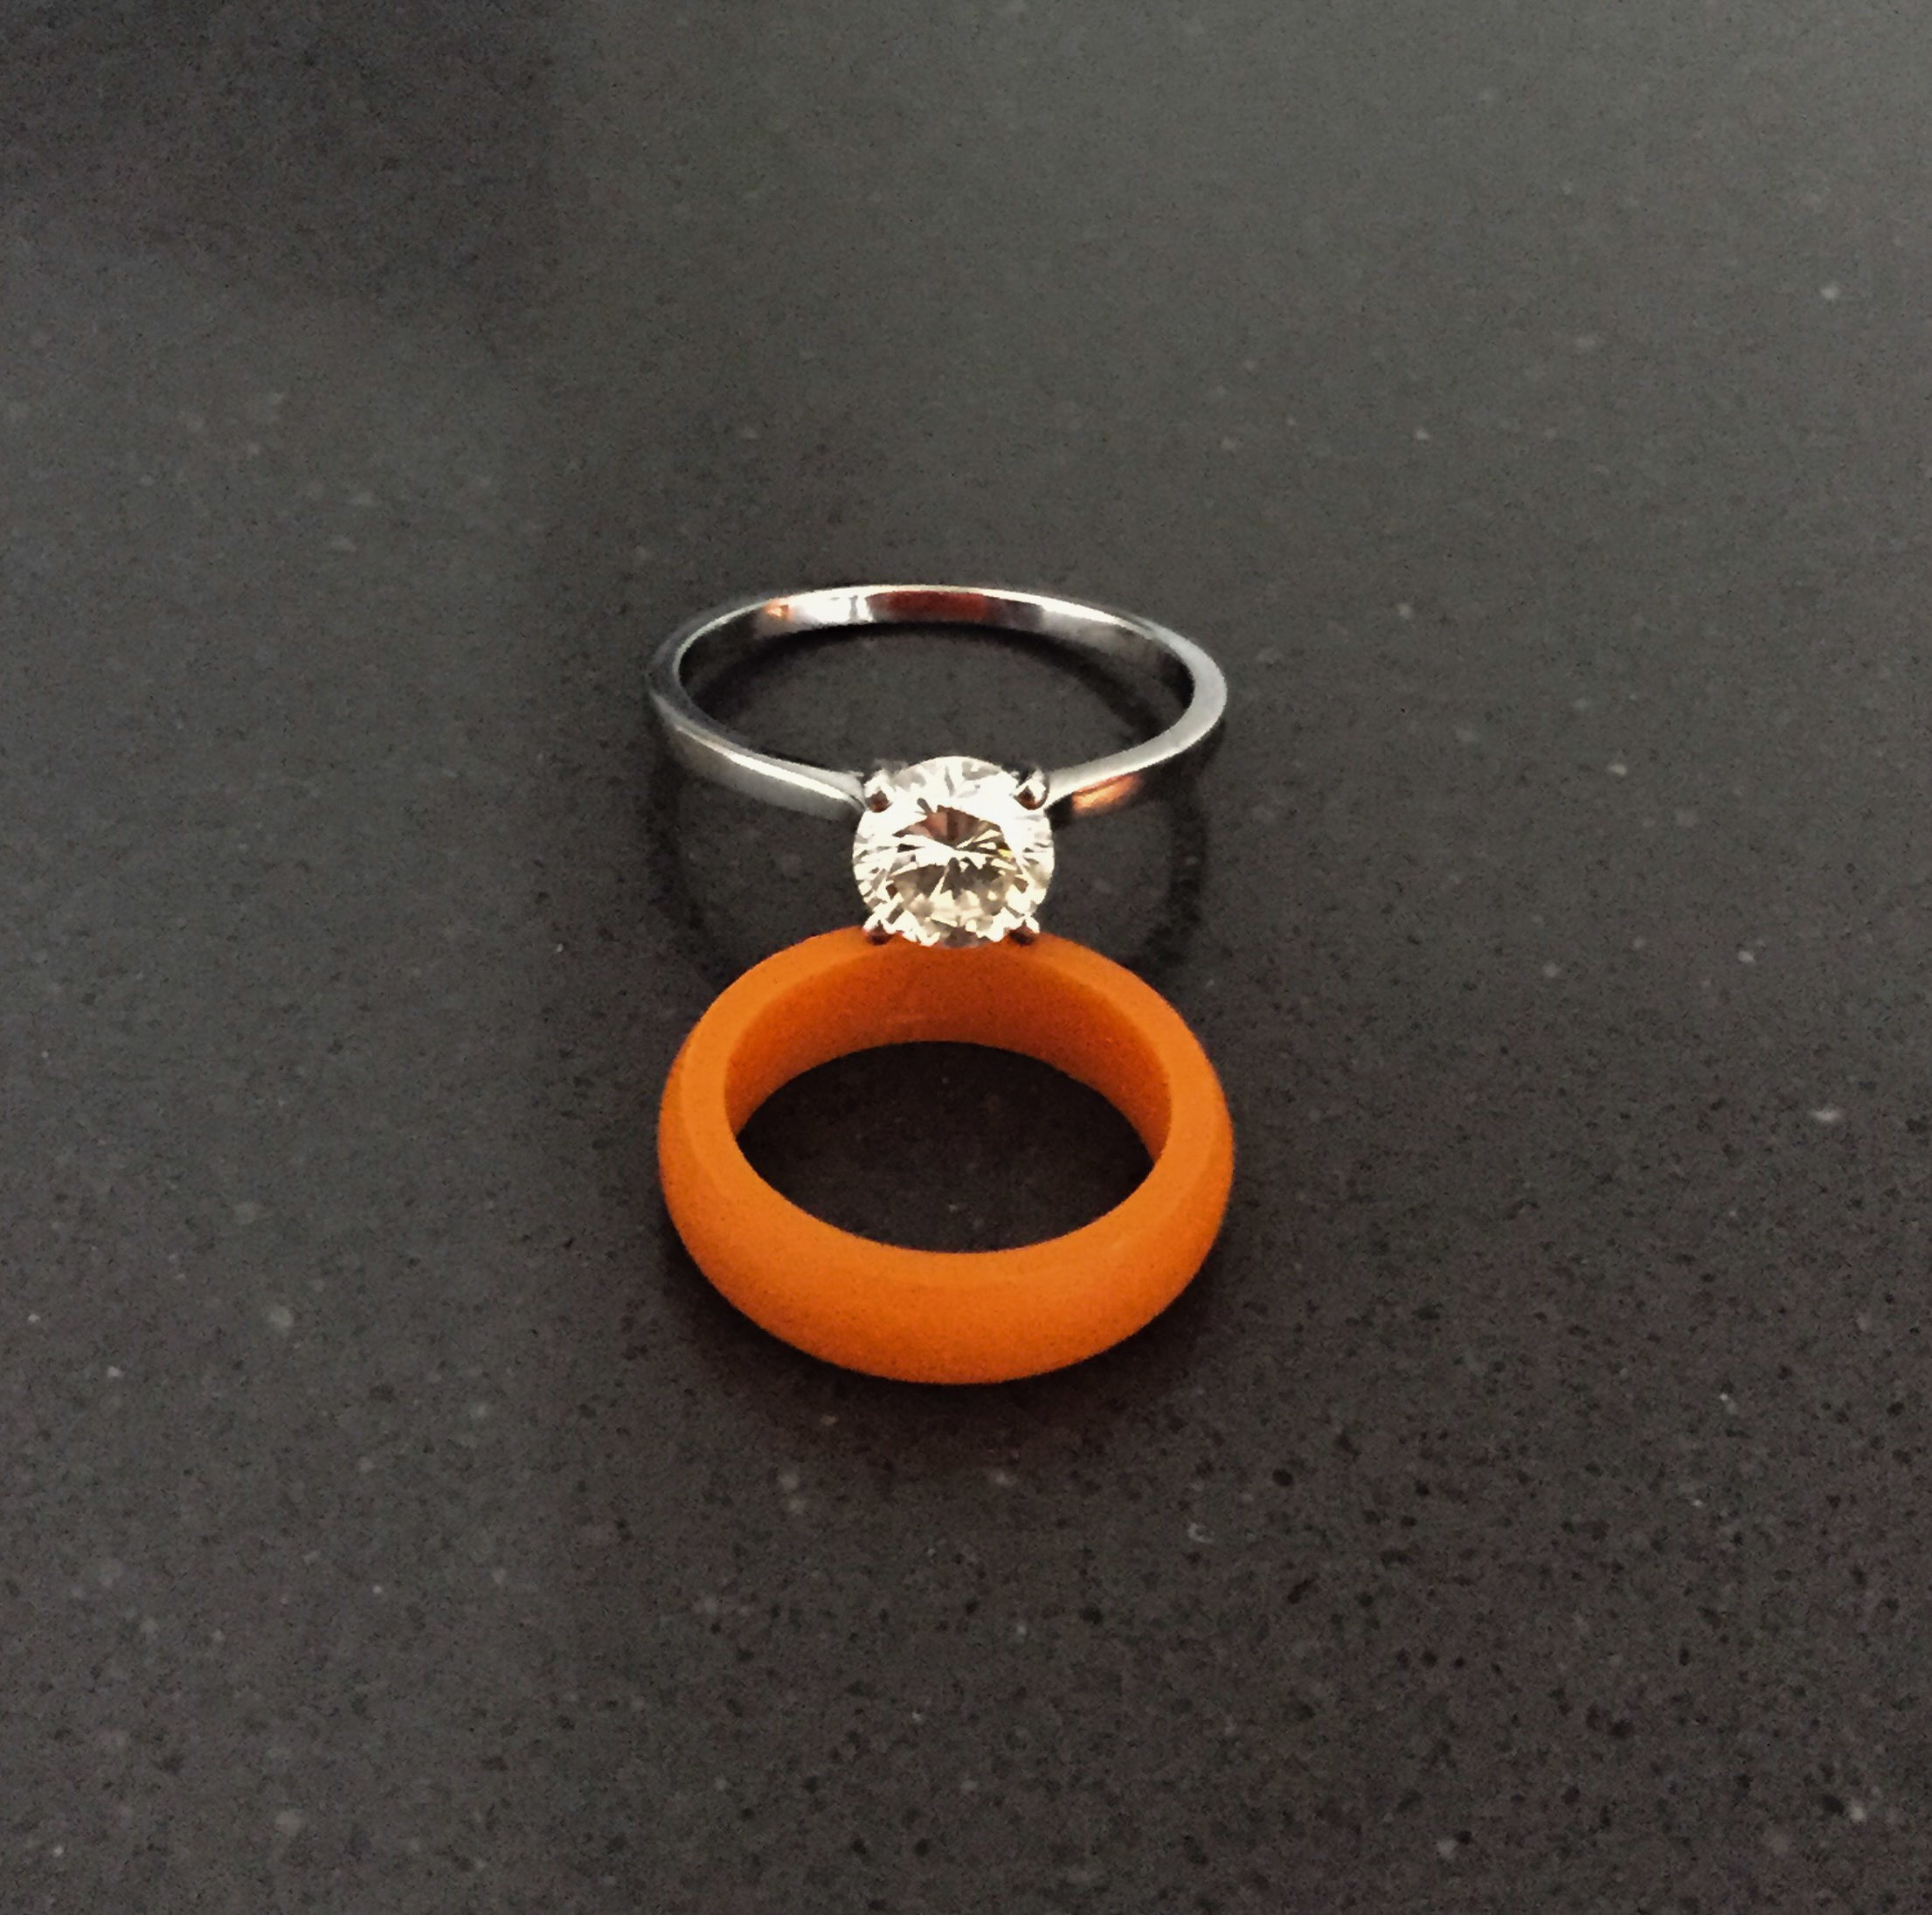 matching his her wildlife ring deer sets beautiful jewelers hers antler bands engagement promise wedding kay rings and orange camo for